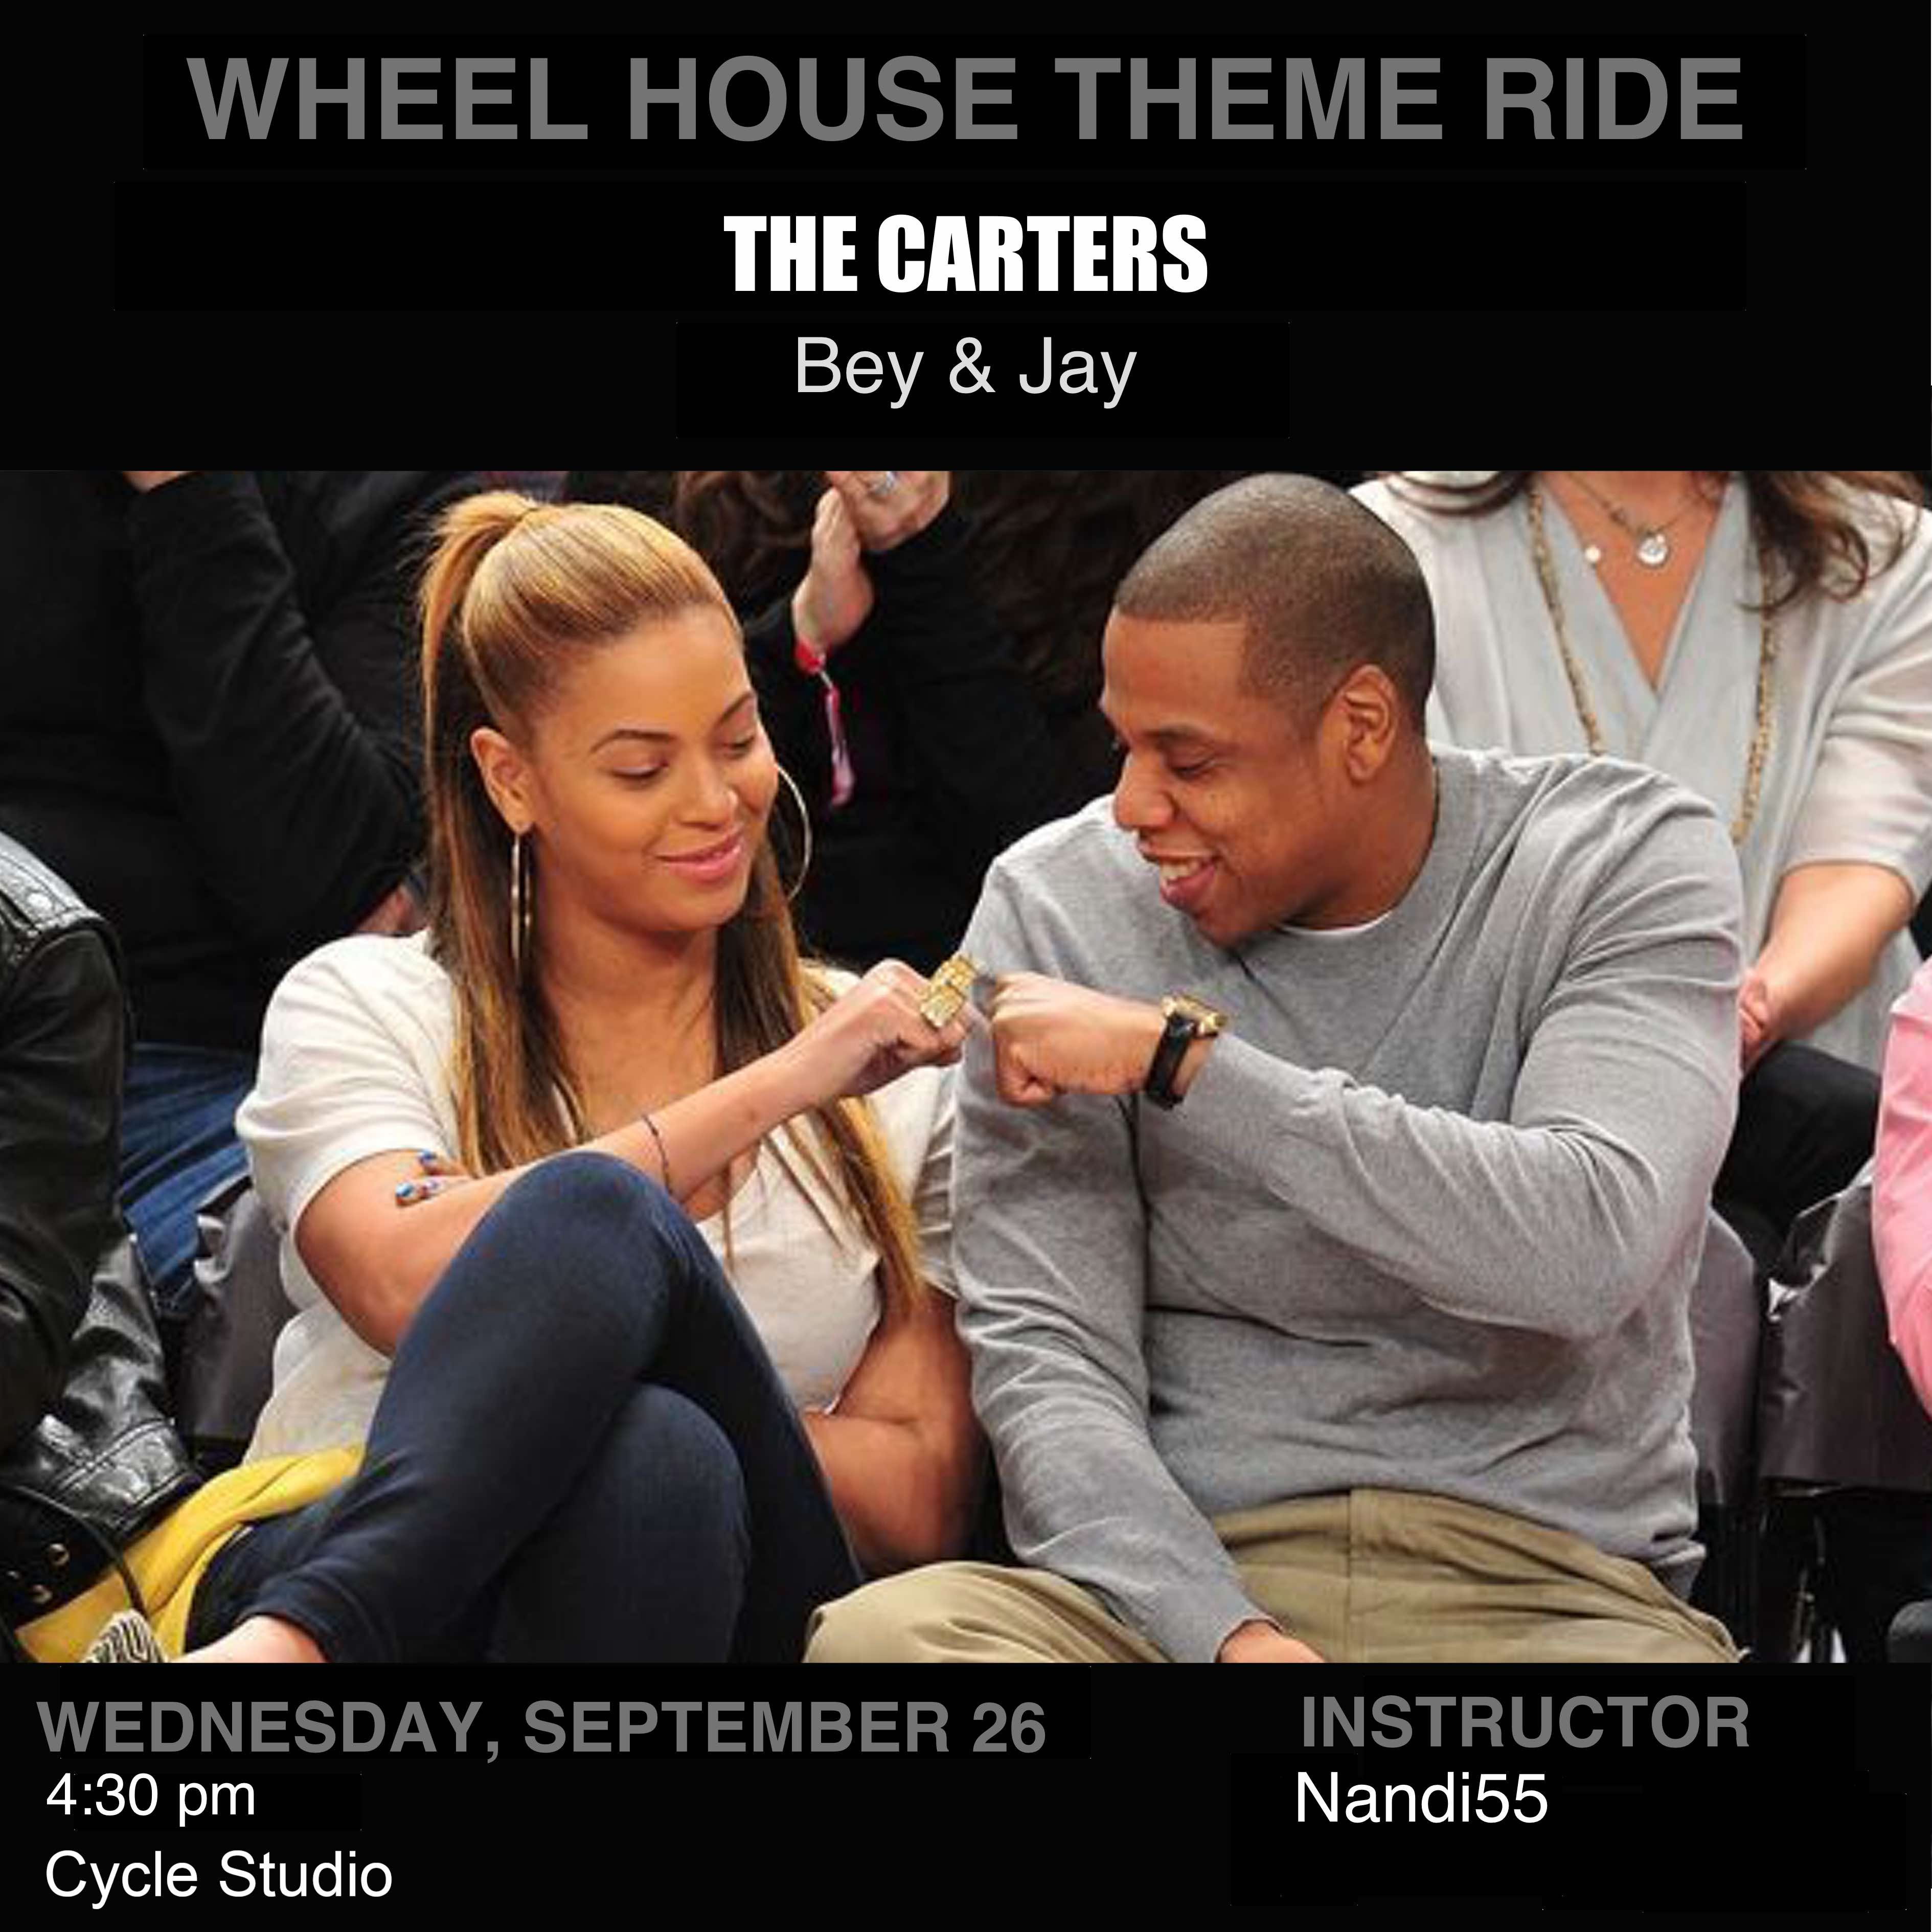 The Carters - Bey & Jay